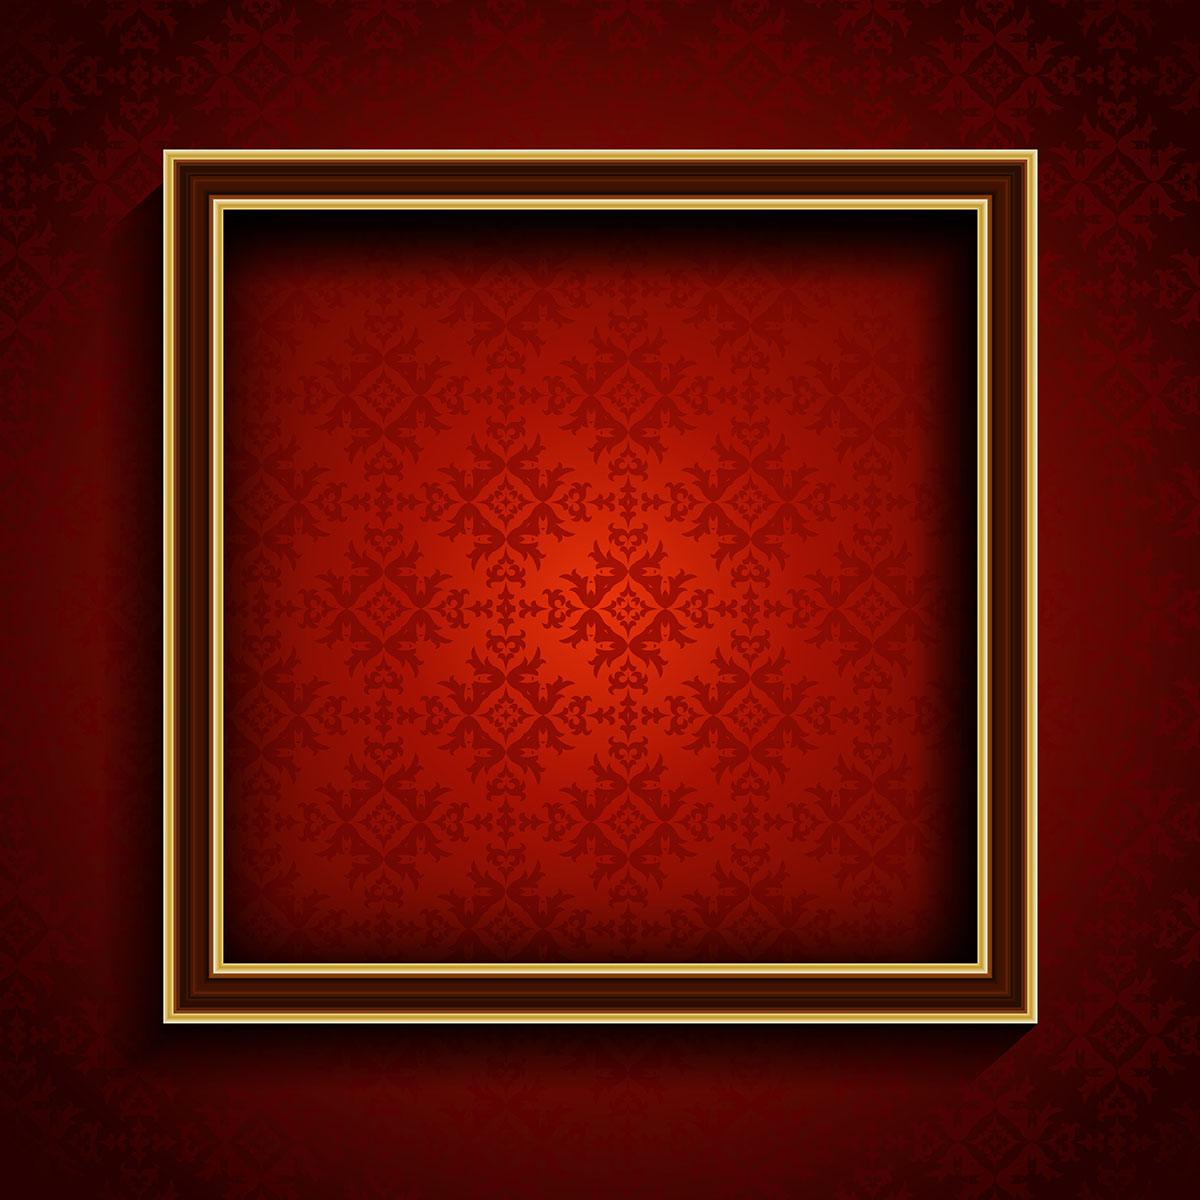 3d White Brick Wallpaper Old Picture Frame On Red Damask Background Download Free